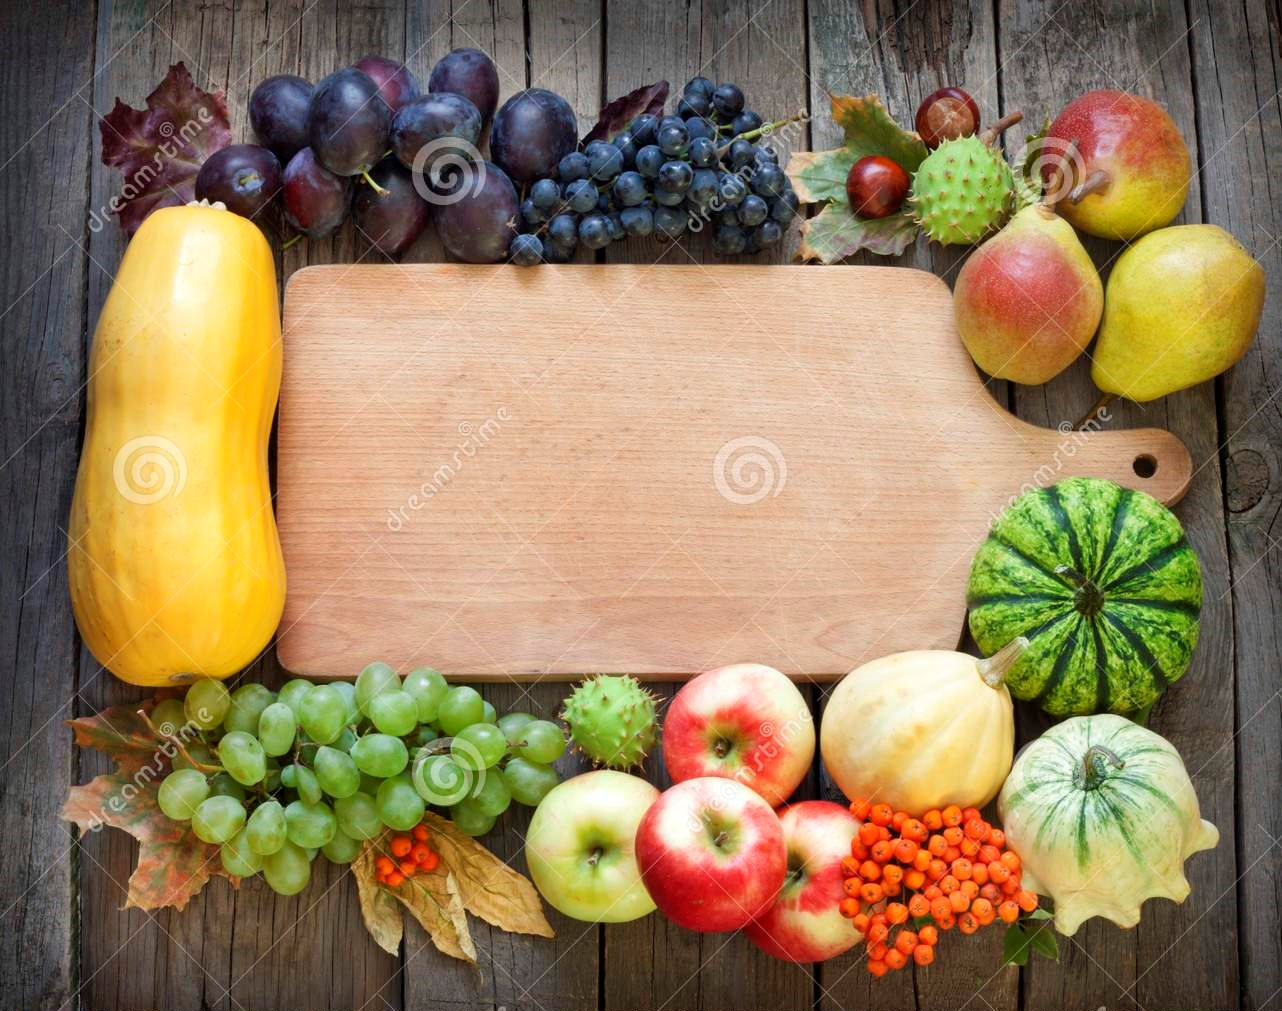 autumn-fruits-vegetables-empty-cutting-board-background-33494785